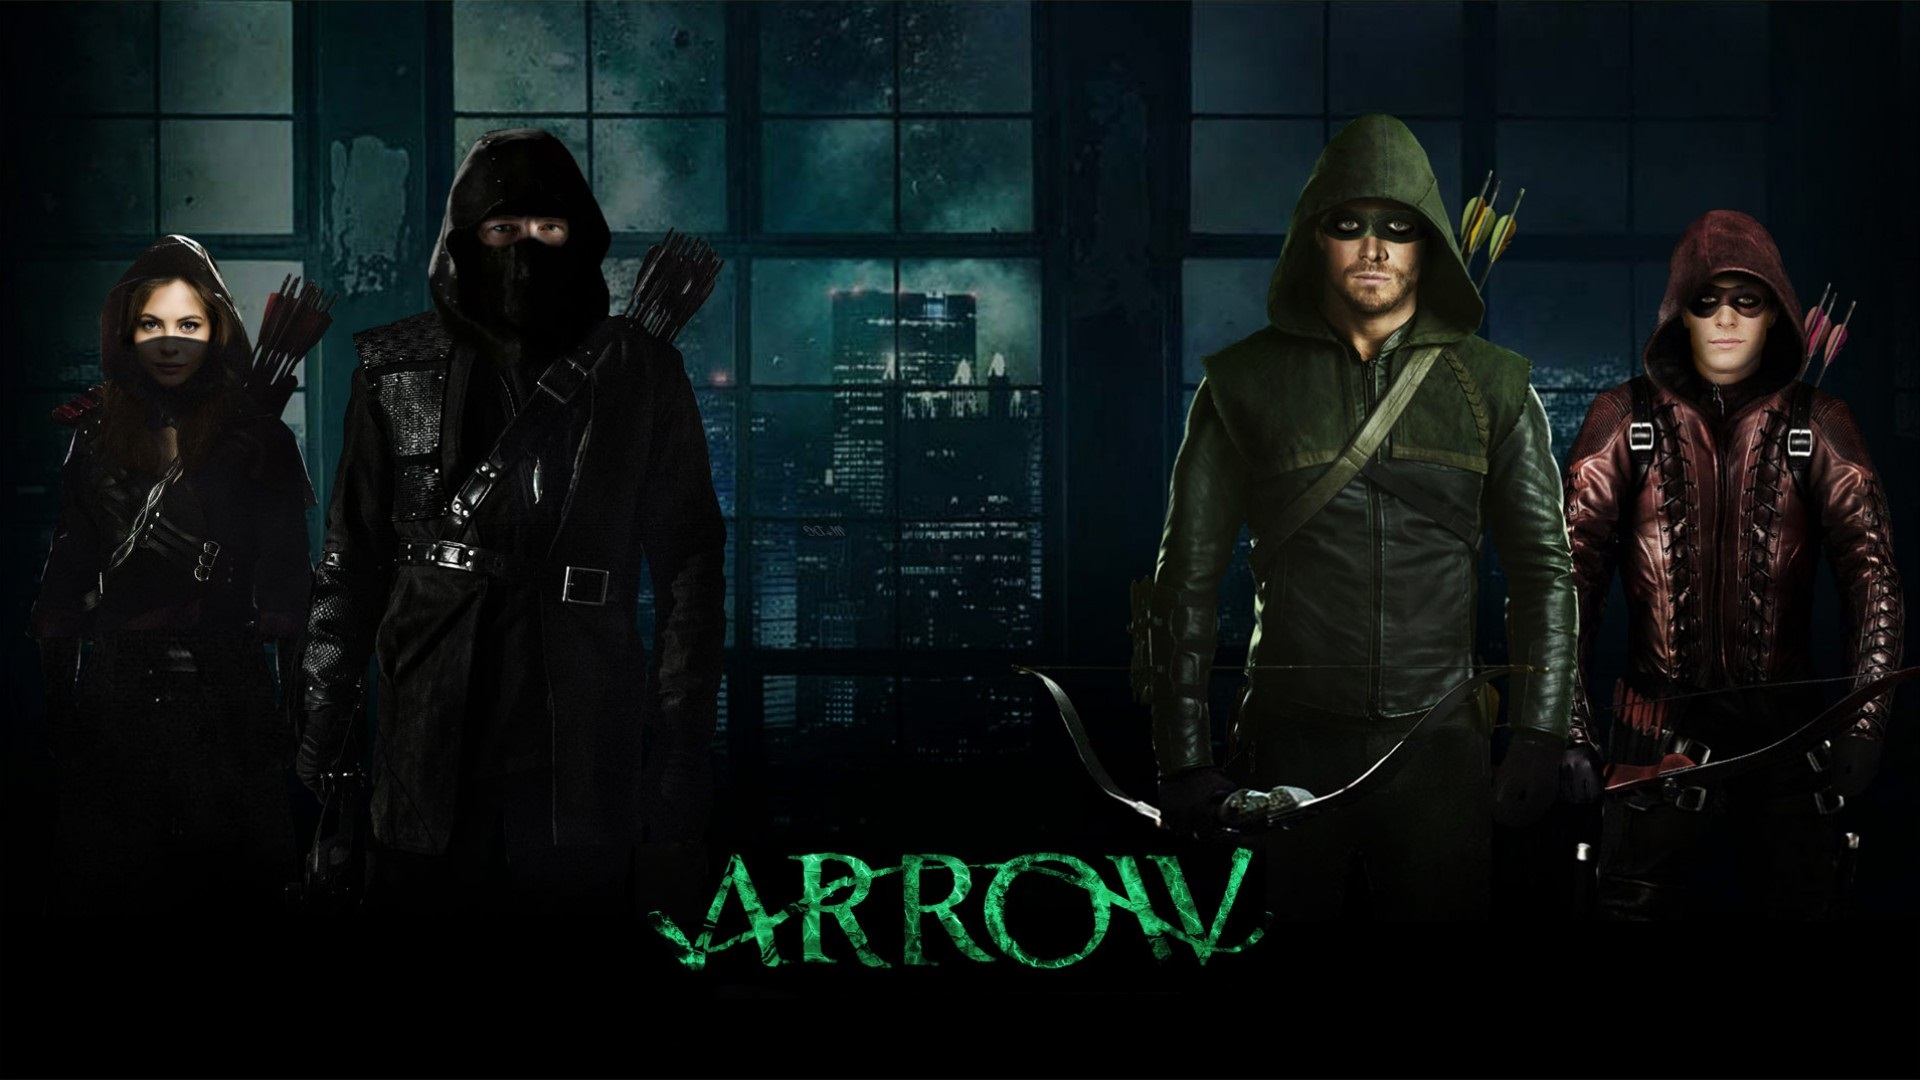 Arrow 6x18 - Fundamentals